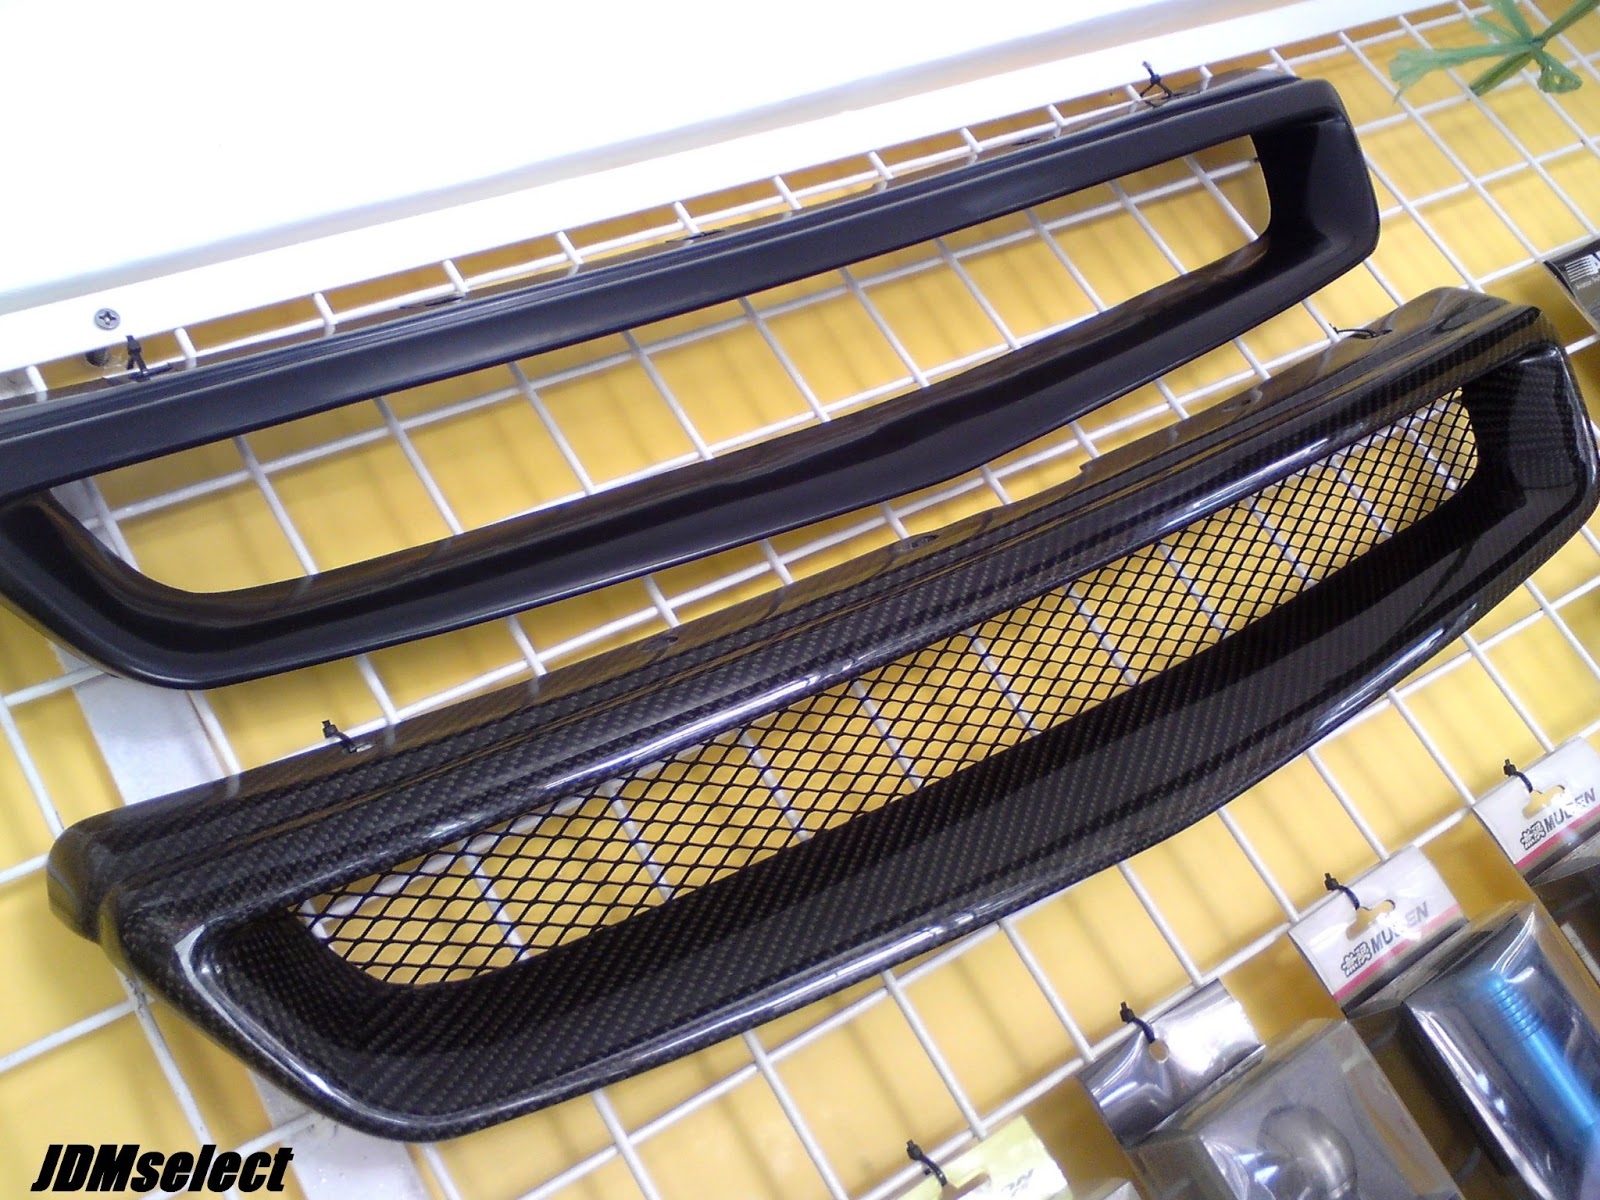 cusco and greddy oil catch can type r chin black plastic imported hc racing carbon fiber ducktail mufflers by hc racing dc sports hks 5zigen and greddy  [ 1600 x 1200 Pixel ]